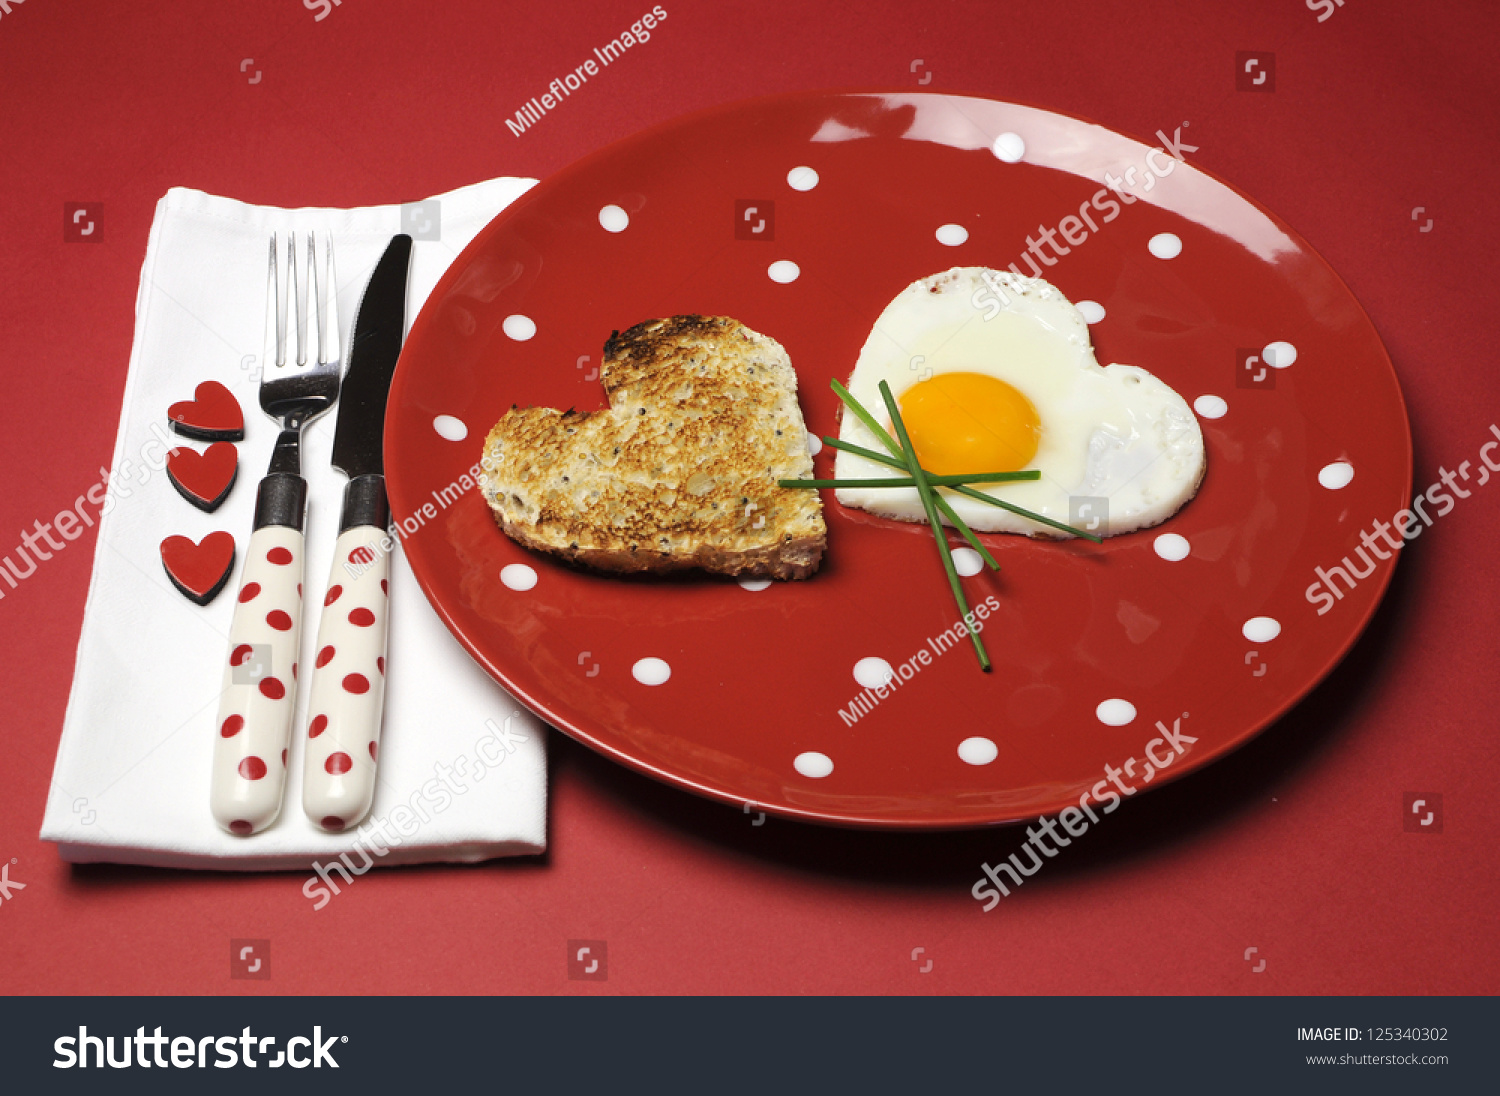 Table Setting For Breakfast Red Theme Breakfast Table Setting Heart Stock Photo 125340302